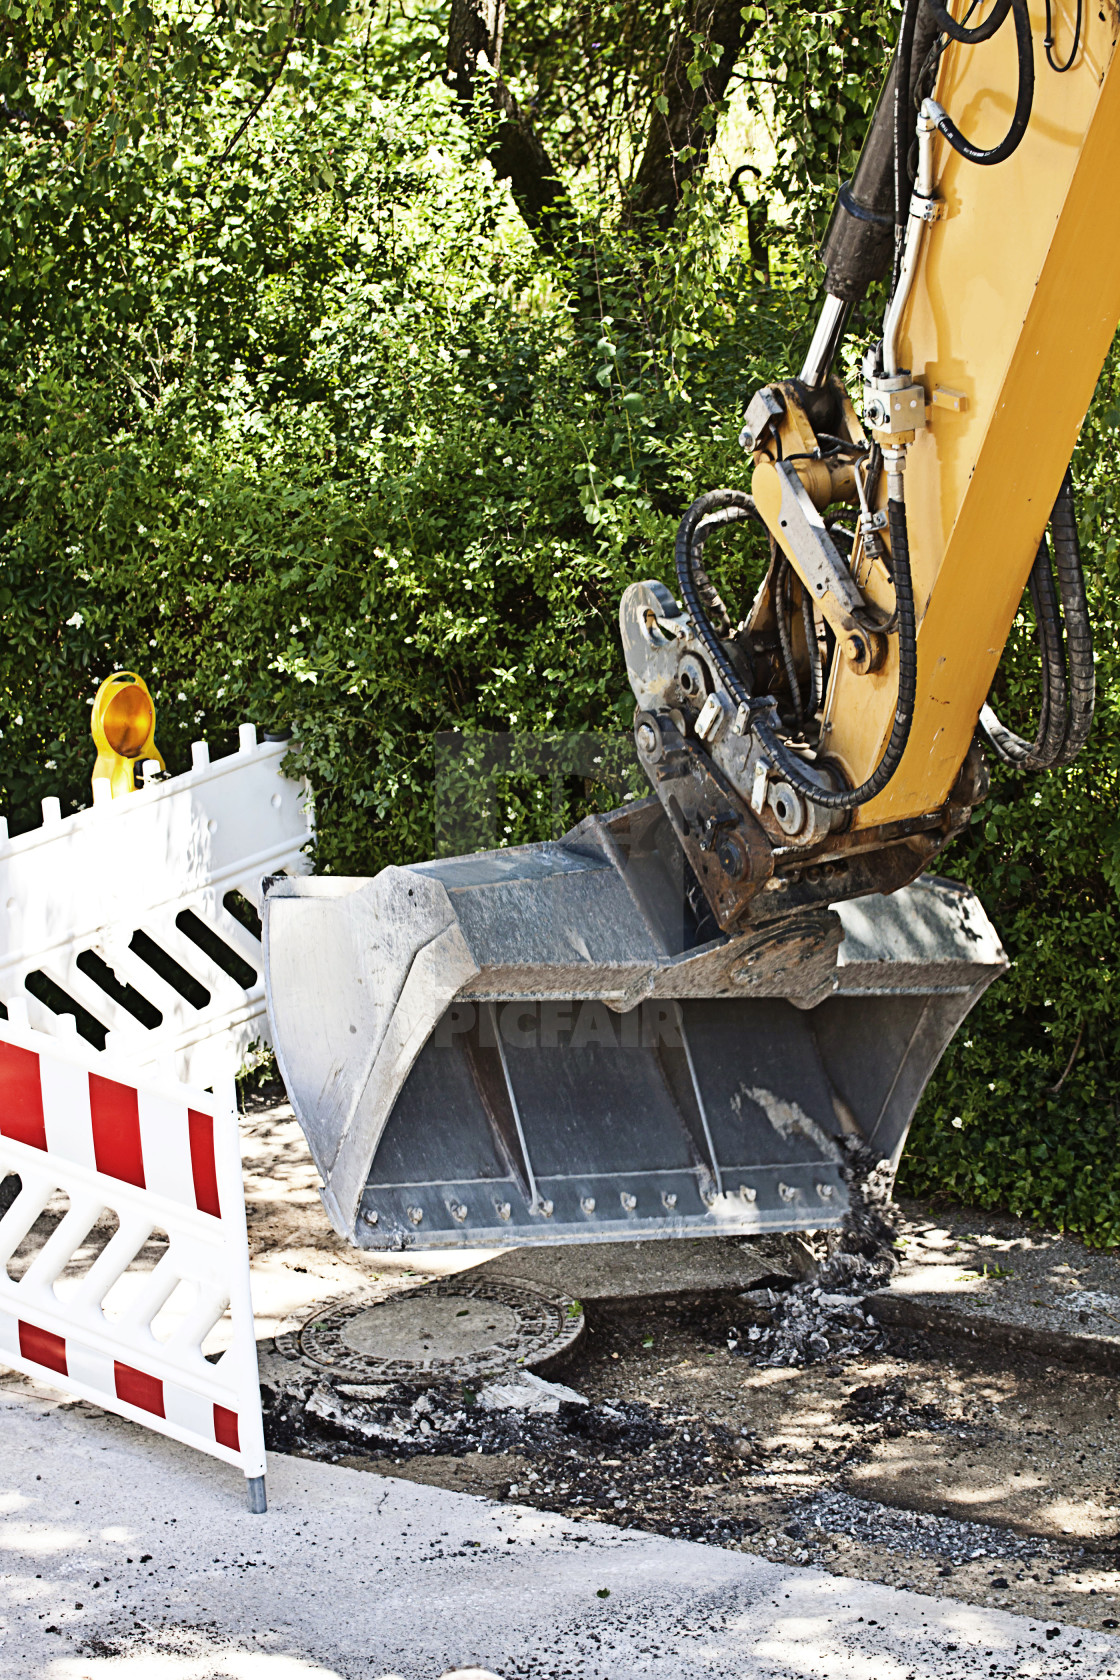 """Road repairing, skid steer loader excavator at work removing old asphalt"" stock image"